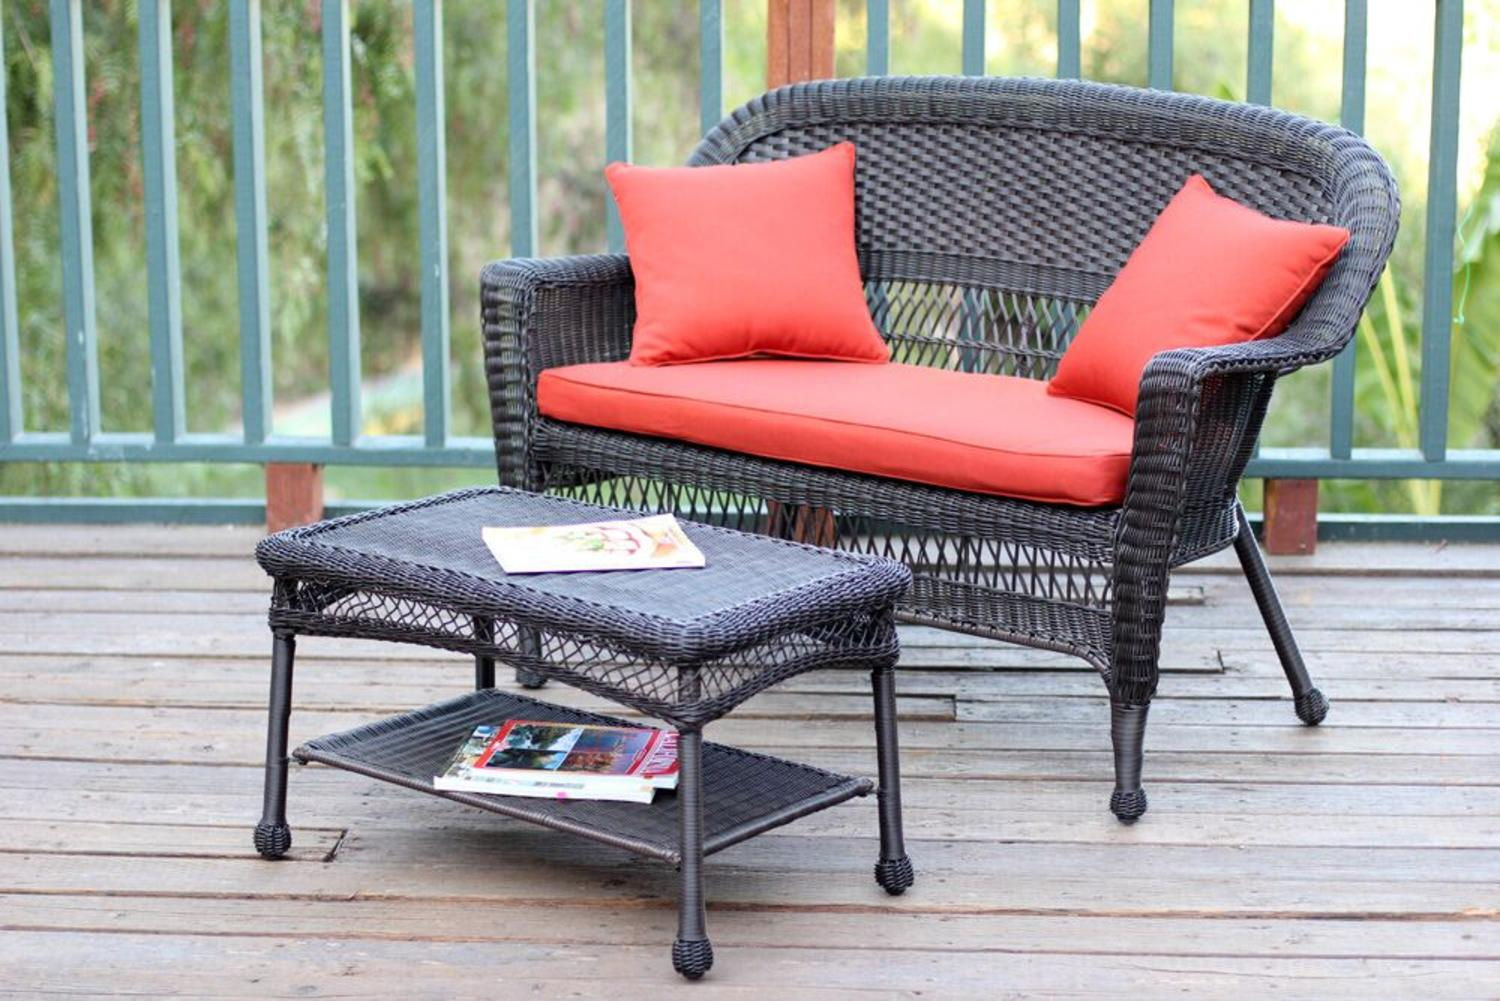 2-Piece Espresso Resin Wicker Patio Loveseat & Coffee Table Set Red-Orange Cushion by Resin Furniture